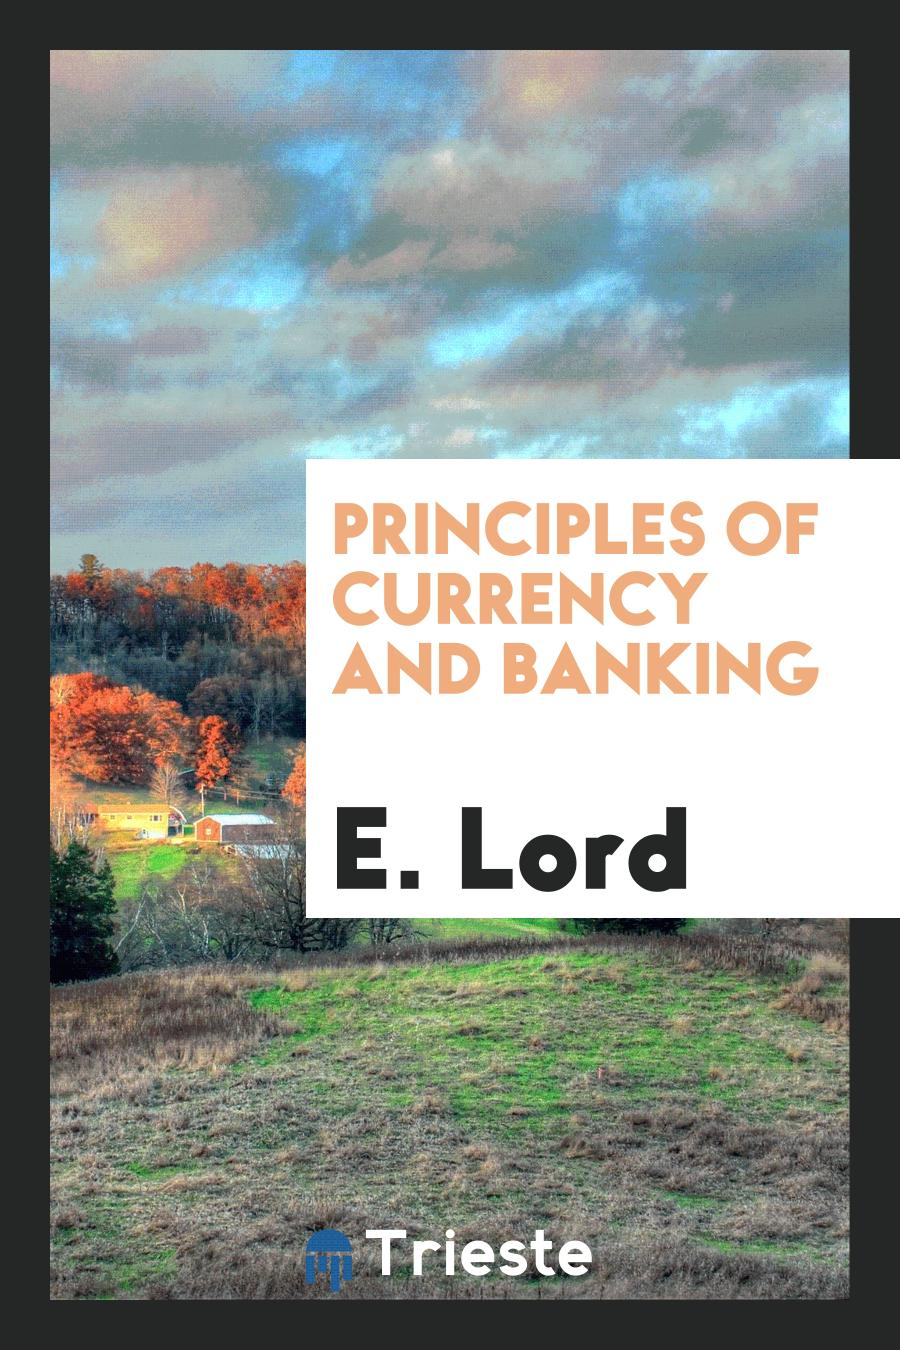 Principles of Currency and Banking